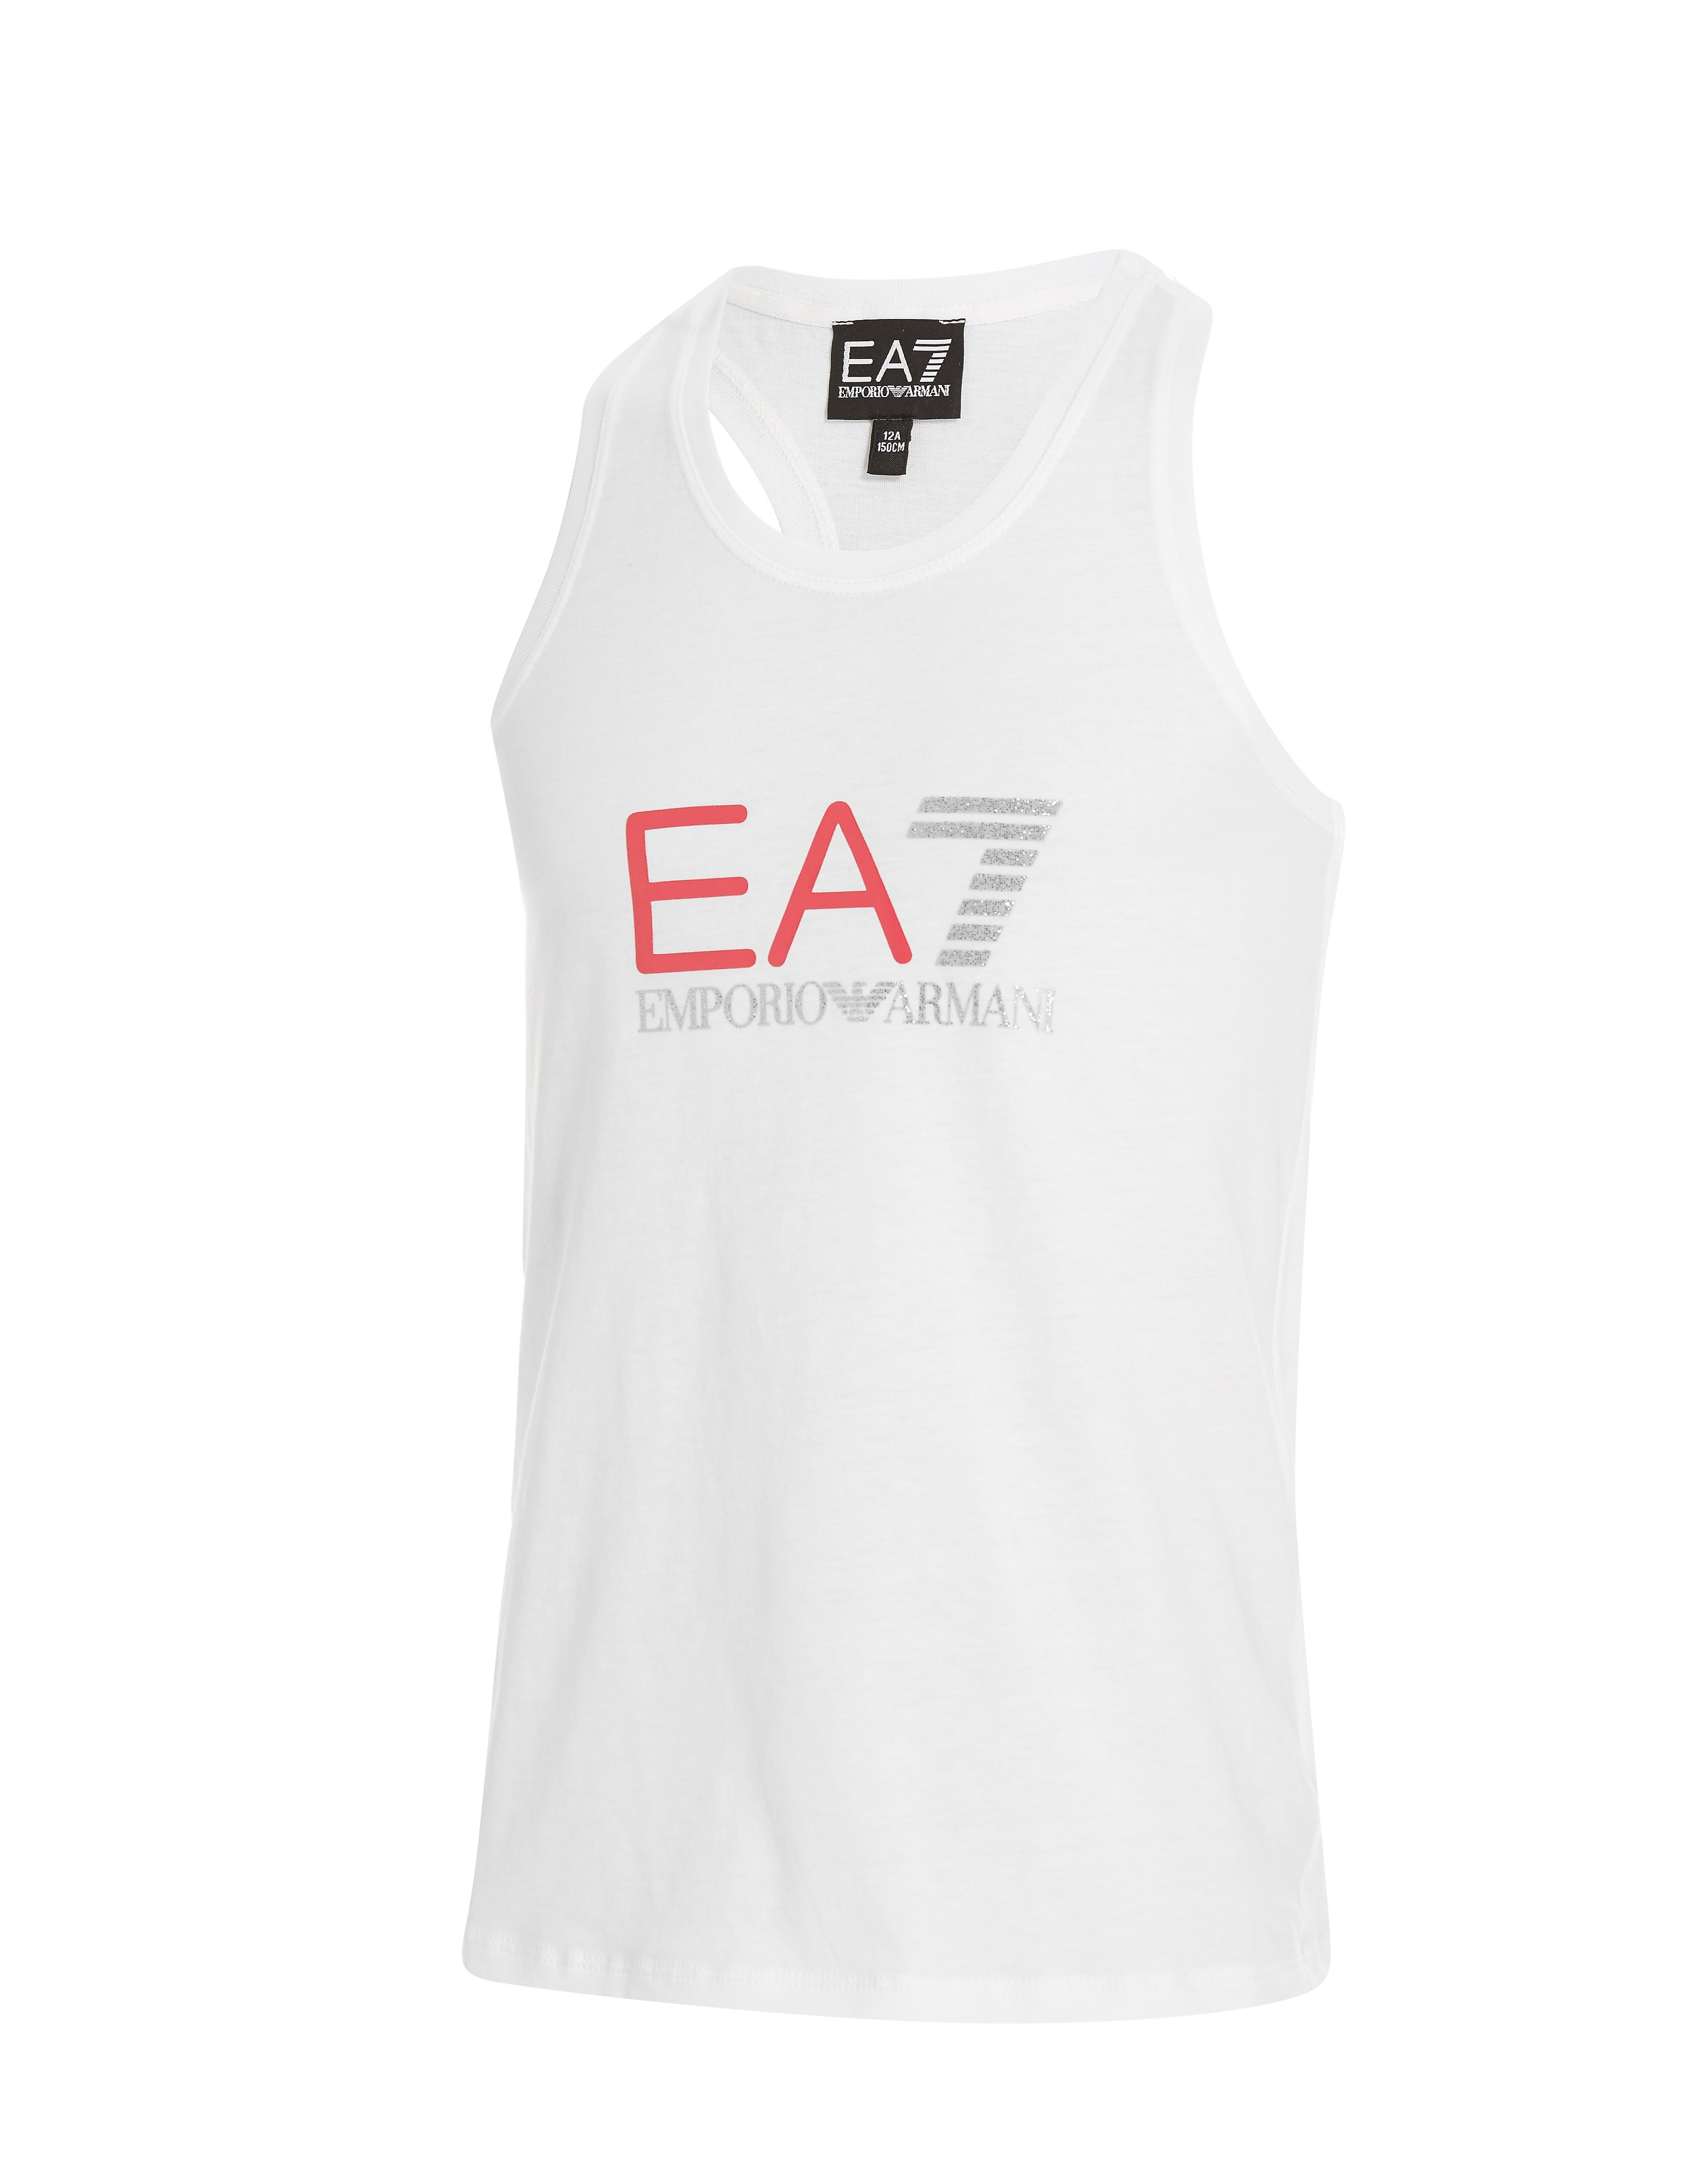 Emporio Armani EA7 Girls' Gloss Vest Junior